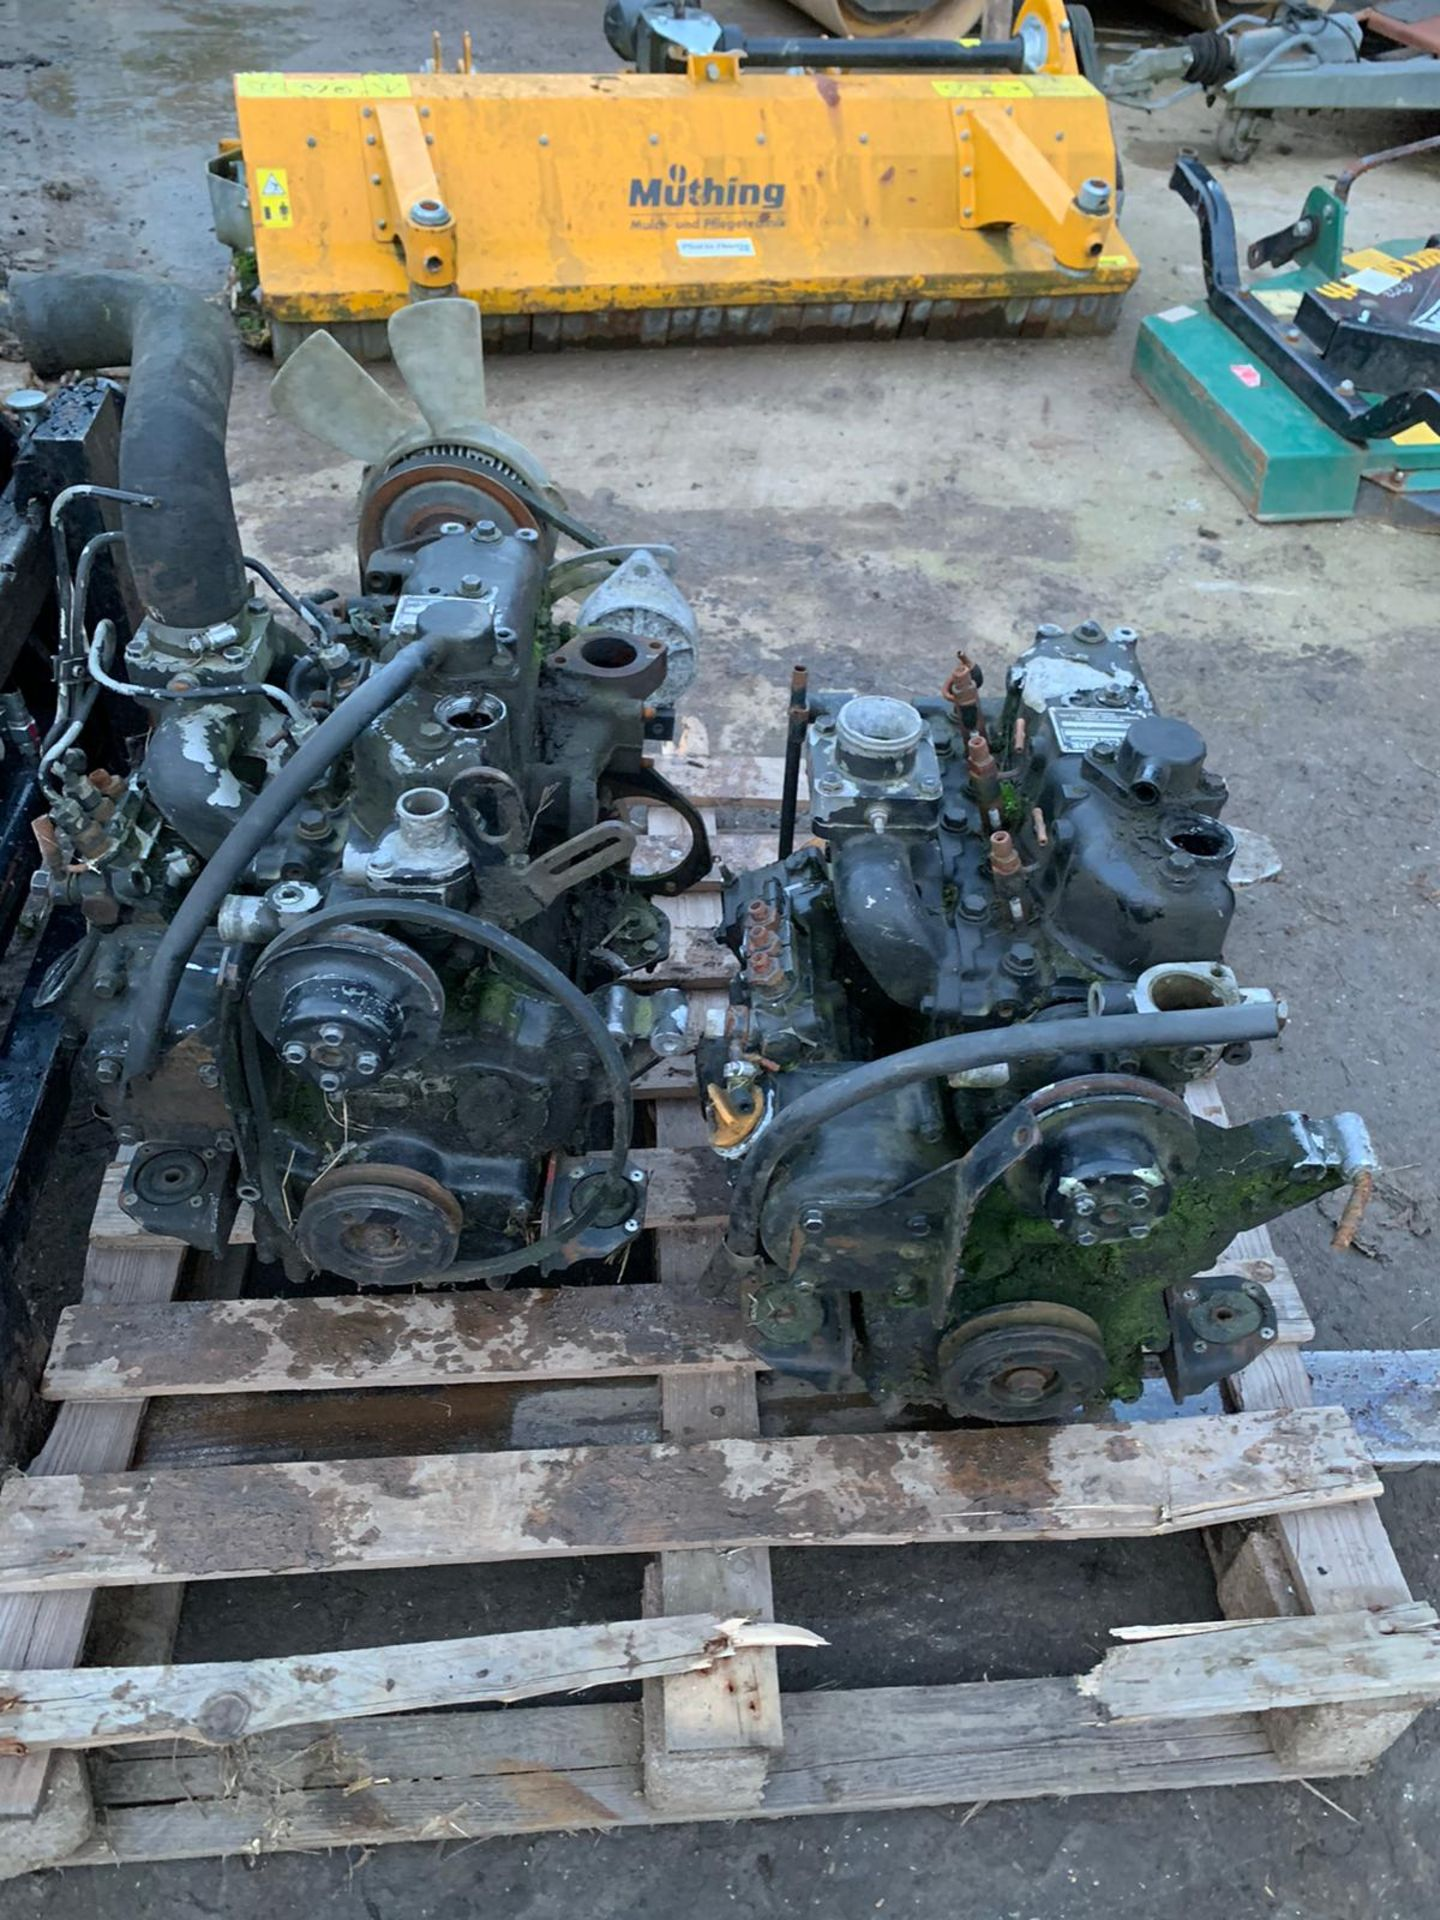 Lot 11 - YANMAR / JOHN DEERE ENGINES, PRICE IS FOR THE PAIR, EX COUNCIL, SELLING AS SPARES *PLUS VAT*